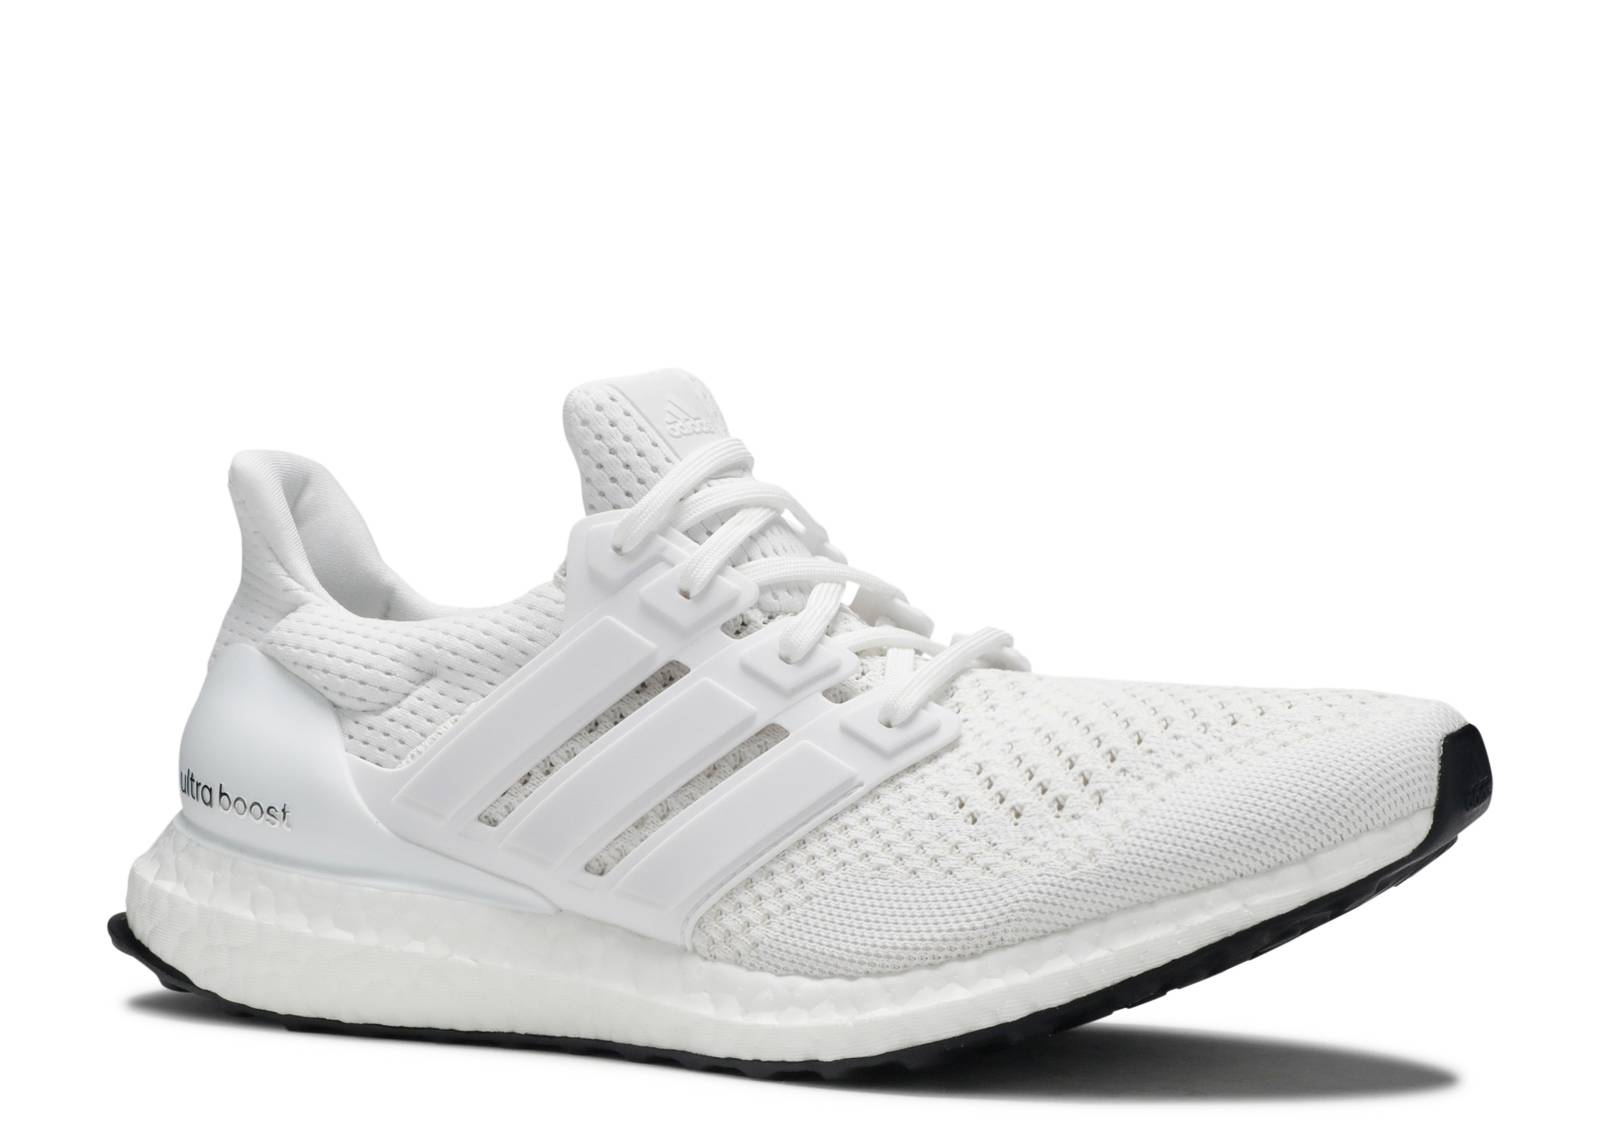 ultra boost m adidas s77416 white white flight club. Black Bedroom Furniture Sets. Home Design Ideas